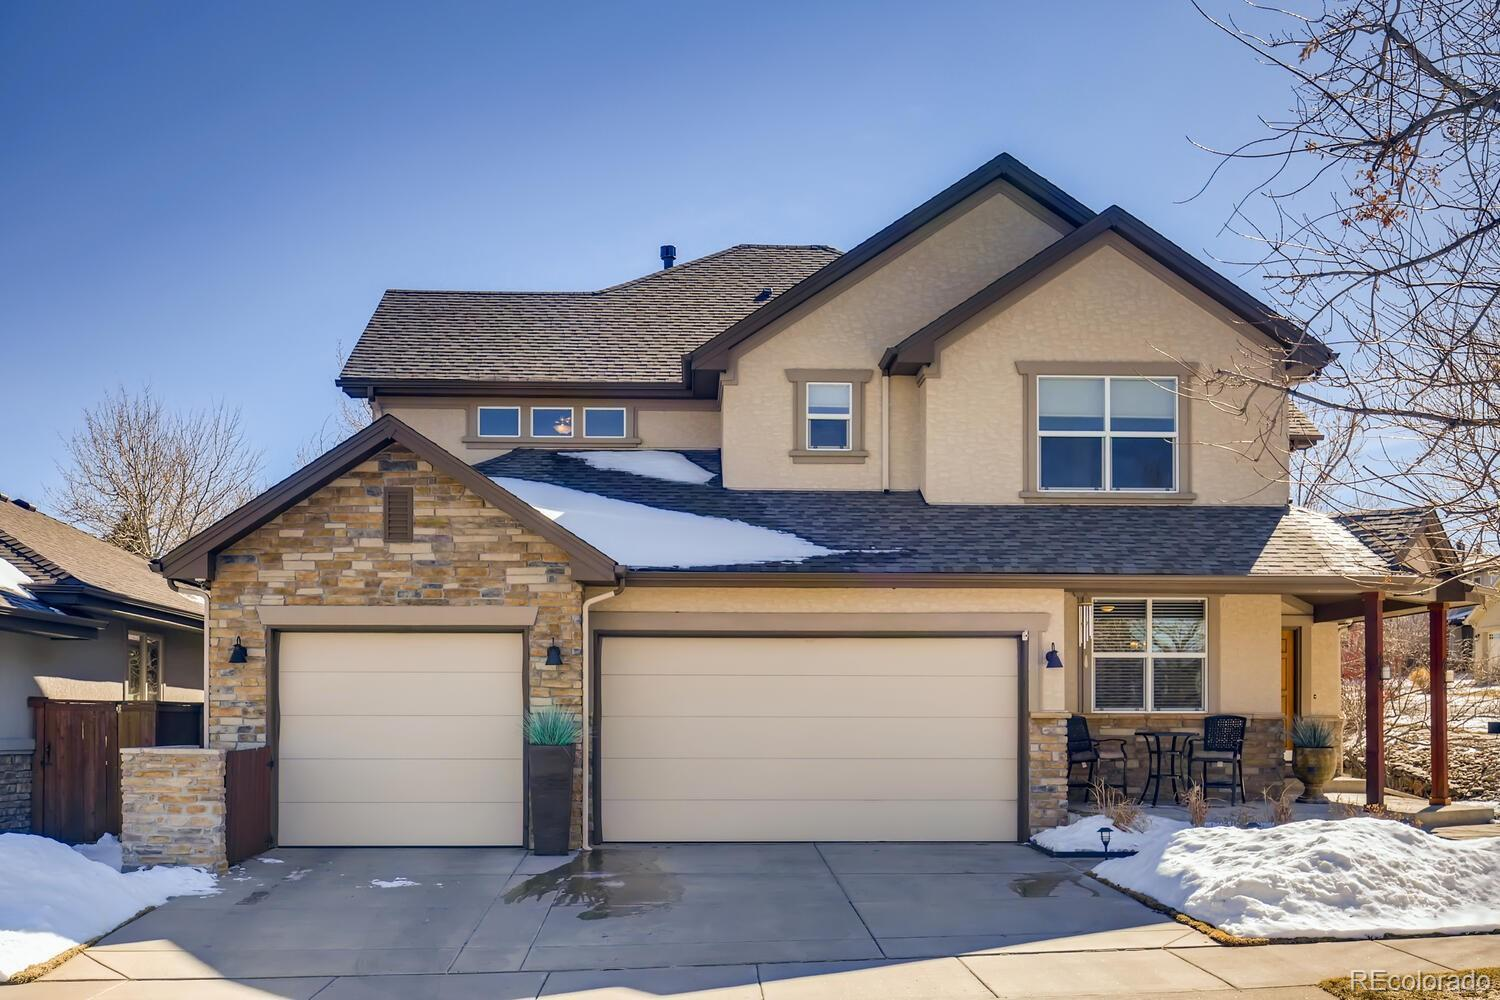 470 S Youngfield Circle, Lakewood, CO 80228 - #: 6368960